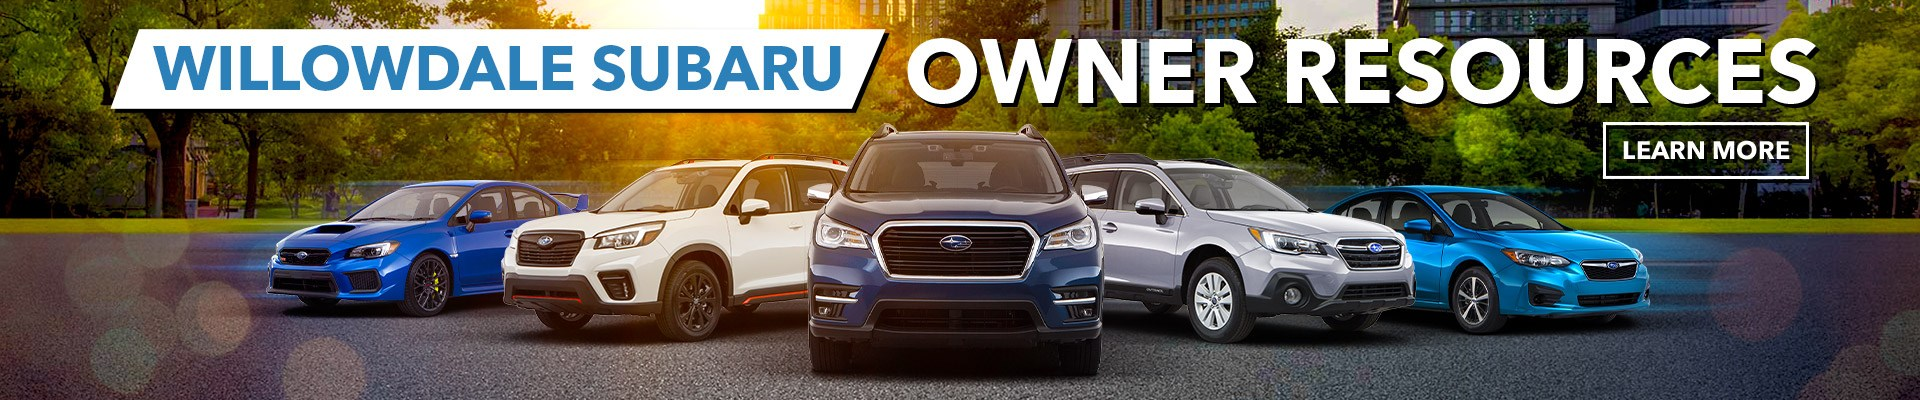 Subaru_Willowdale_Widget_1920x400_OwnersResources